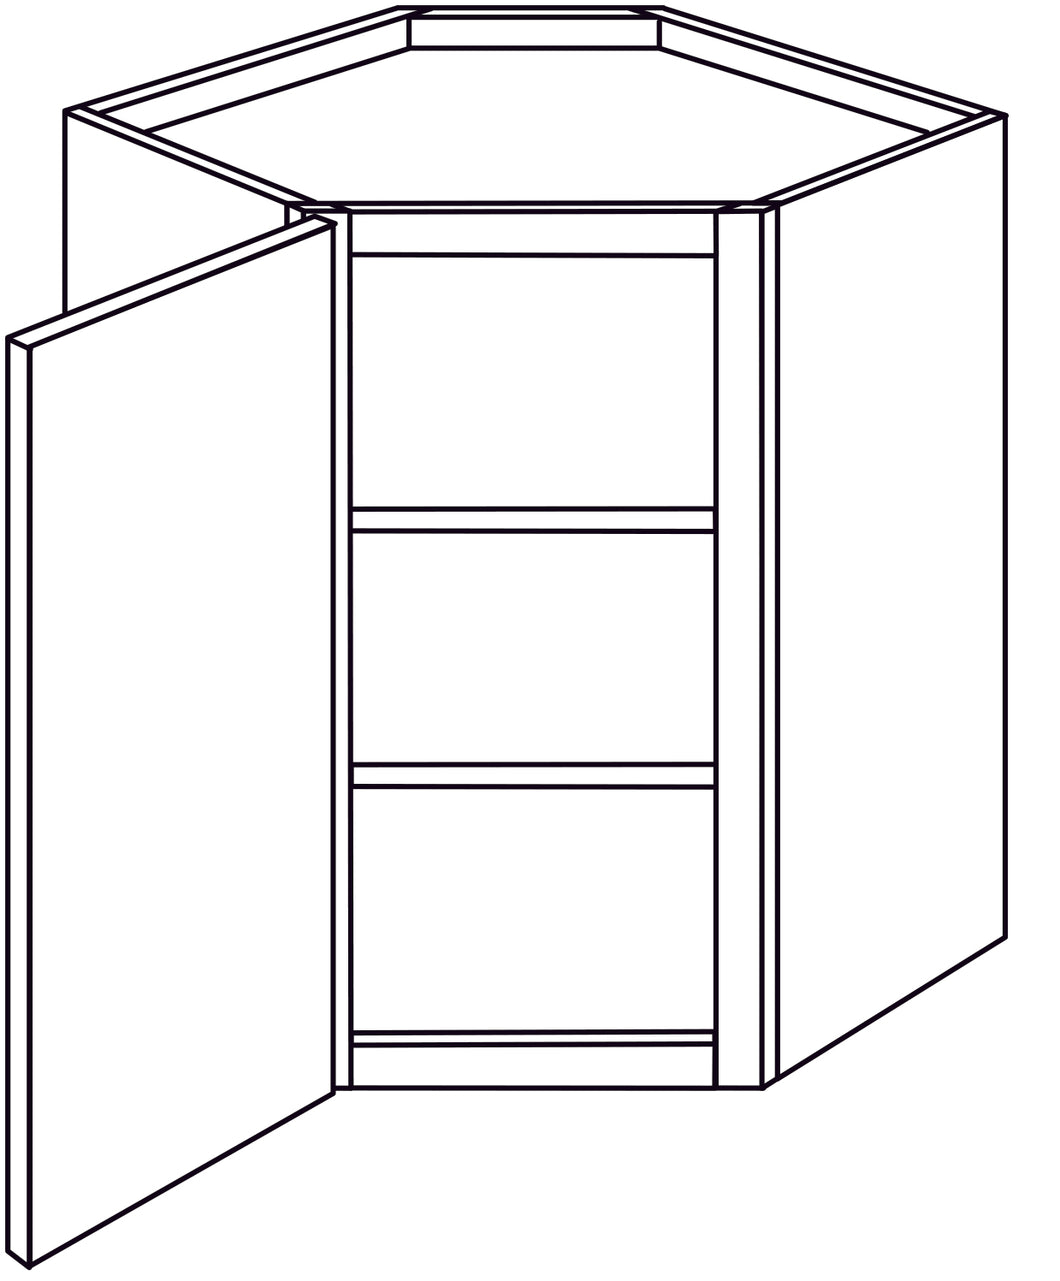 PLYMOUTH WALL CORNER CABINETS: 30